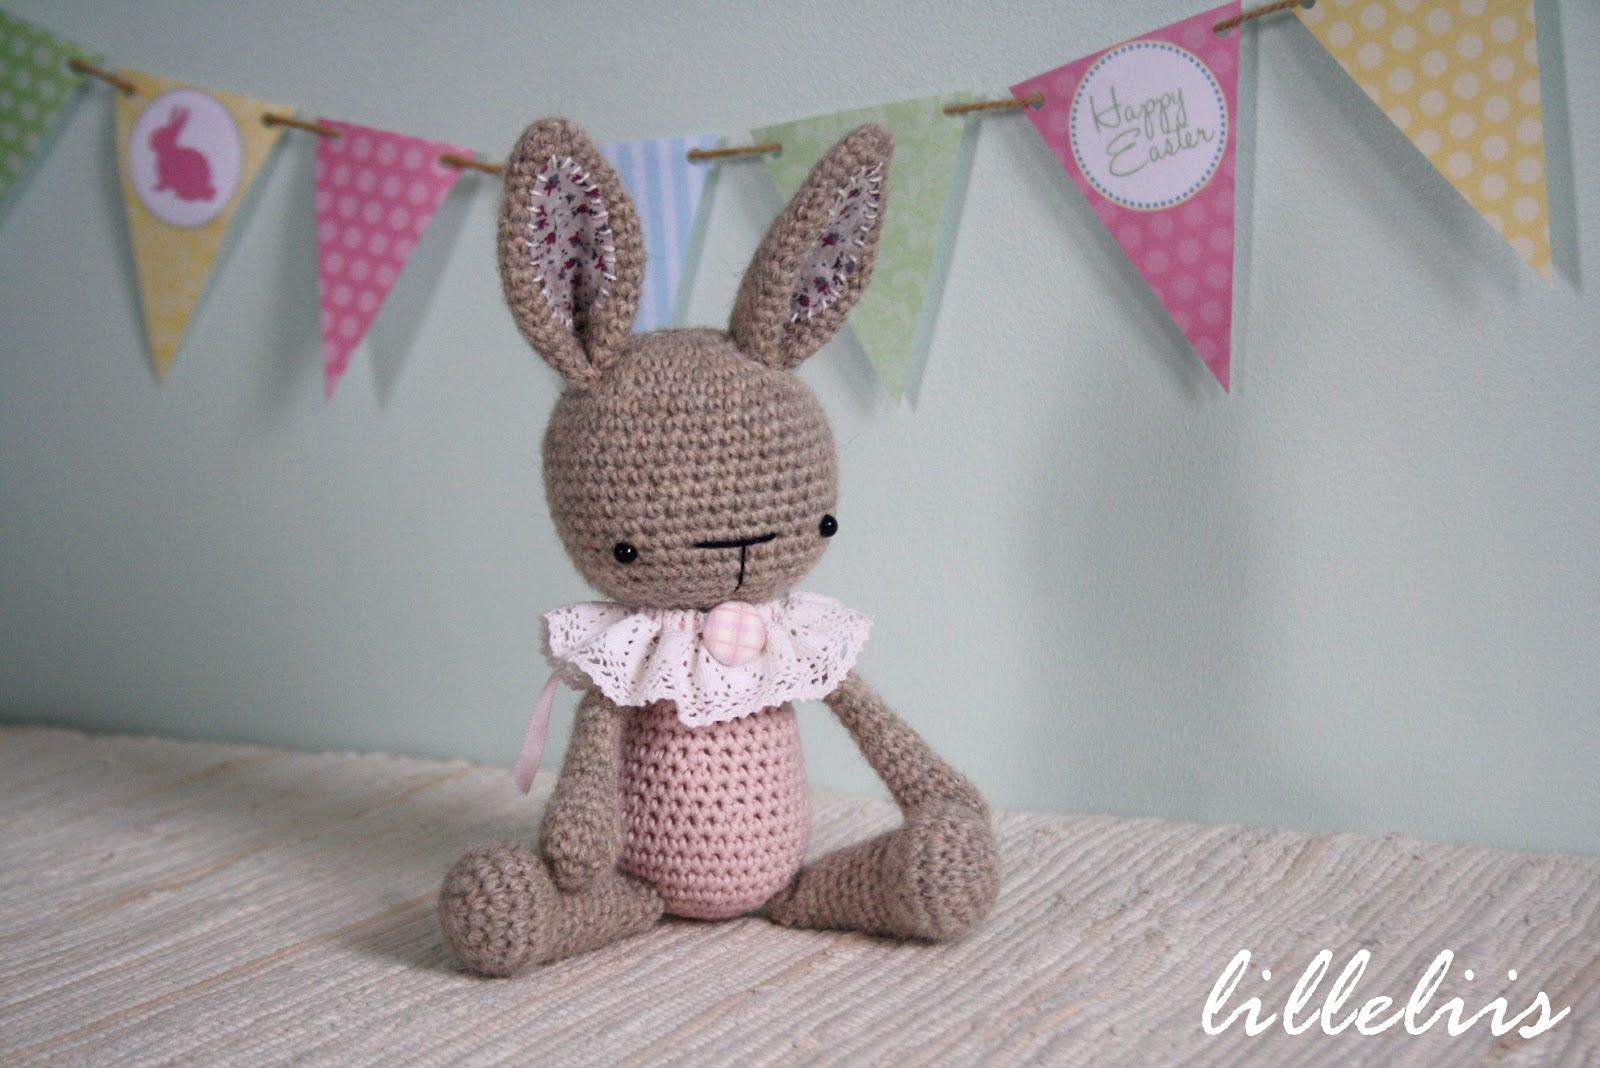 Amigurumi Janes : 1000+ images about Crochet & Knitting on Pinterest ...